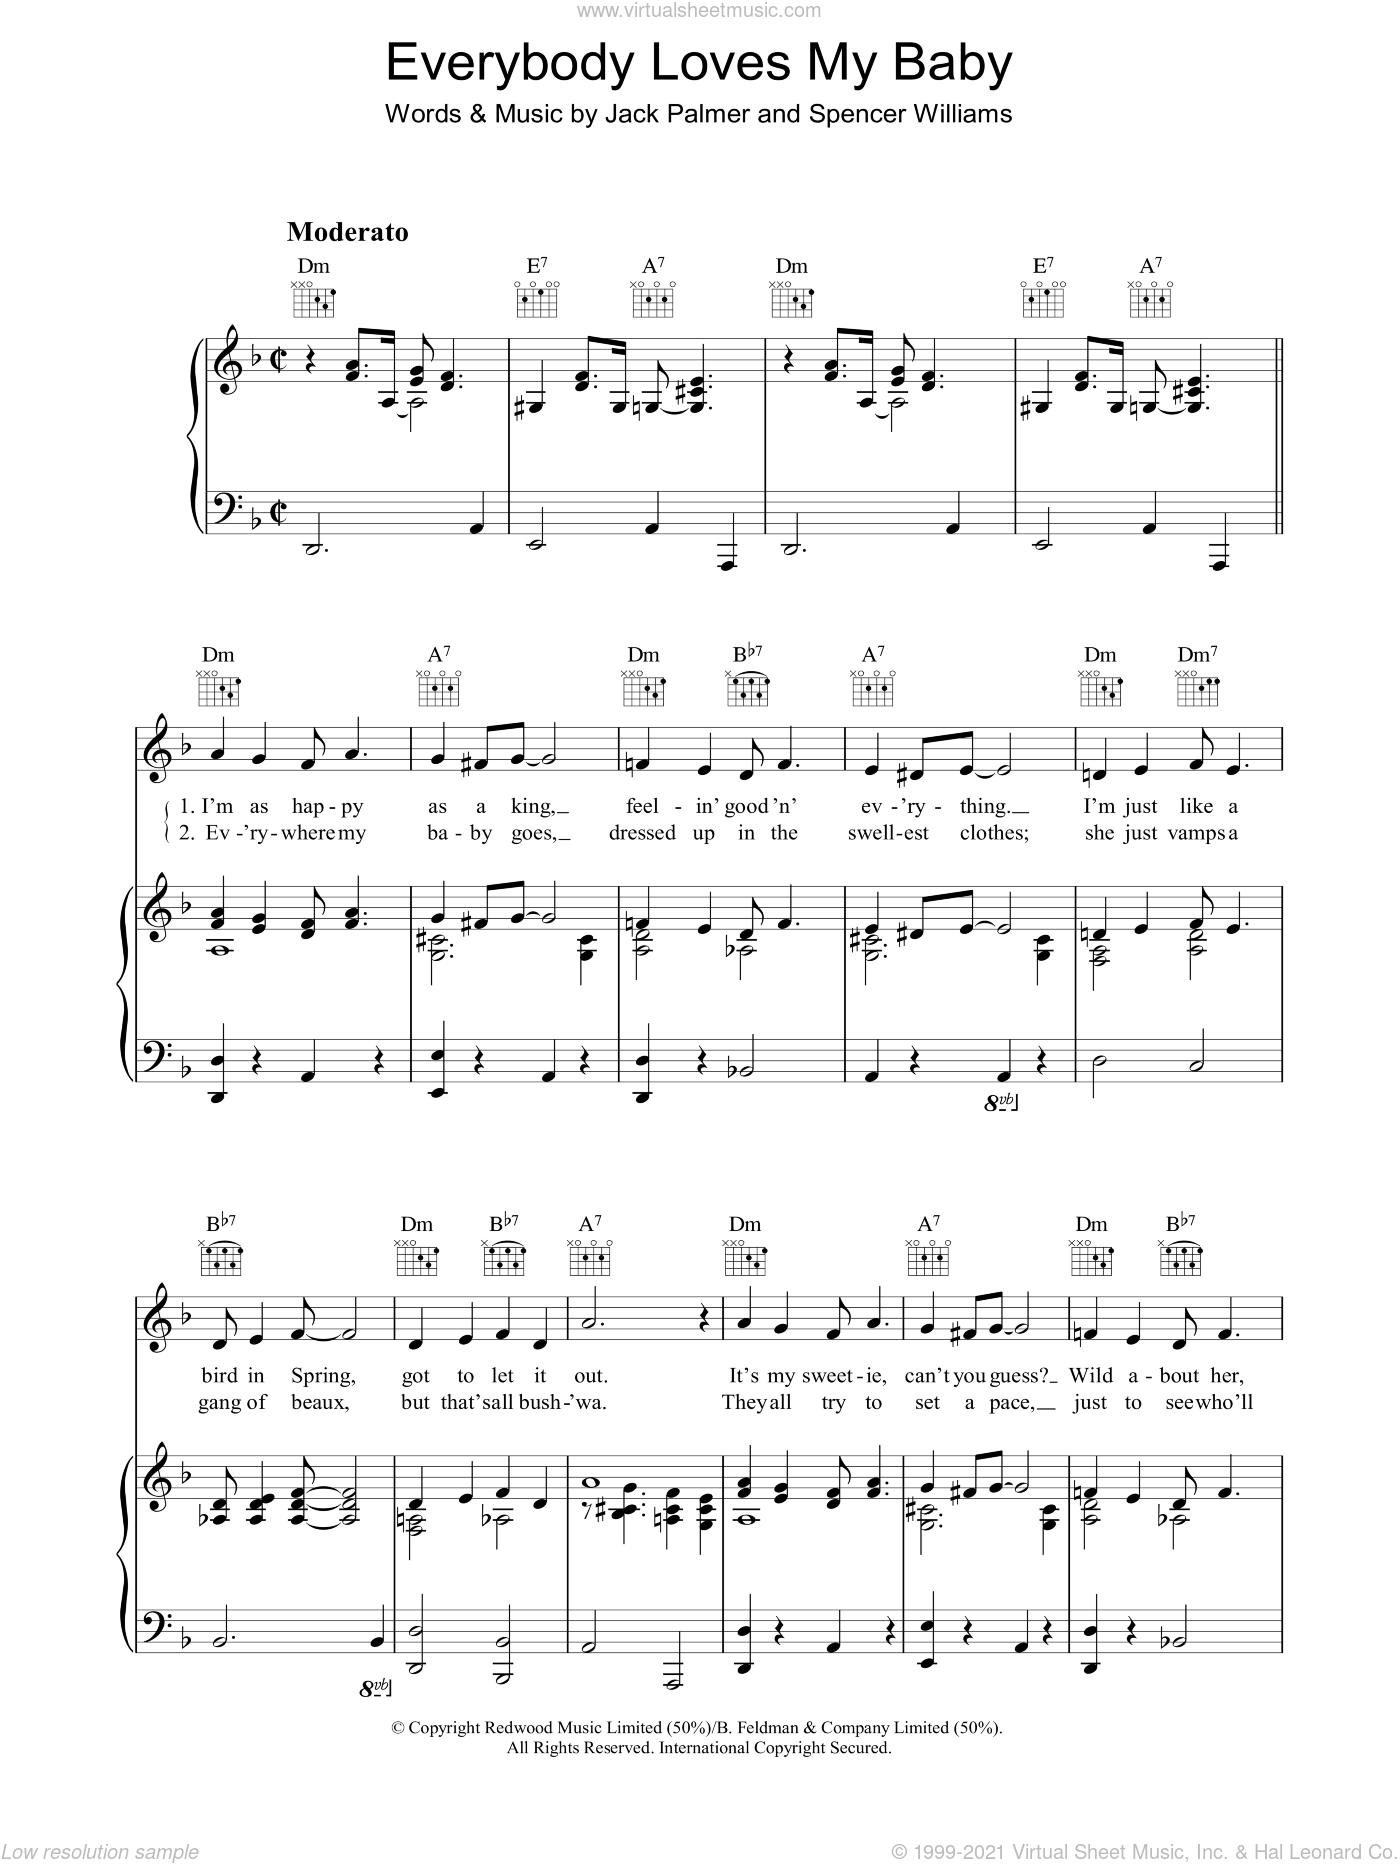 Everybody Loves My Baby (But My Baby Don't Love Nobody But Me) sheet music for voice, piano or guitar by Jack Palmer